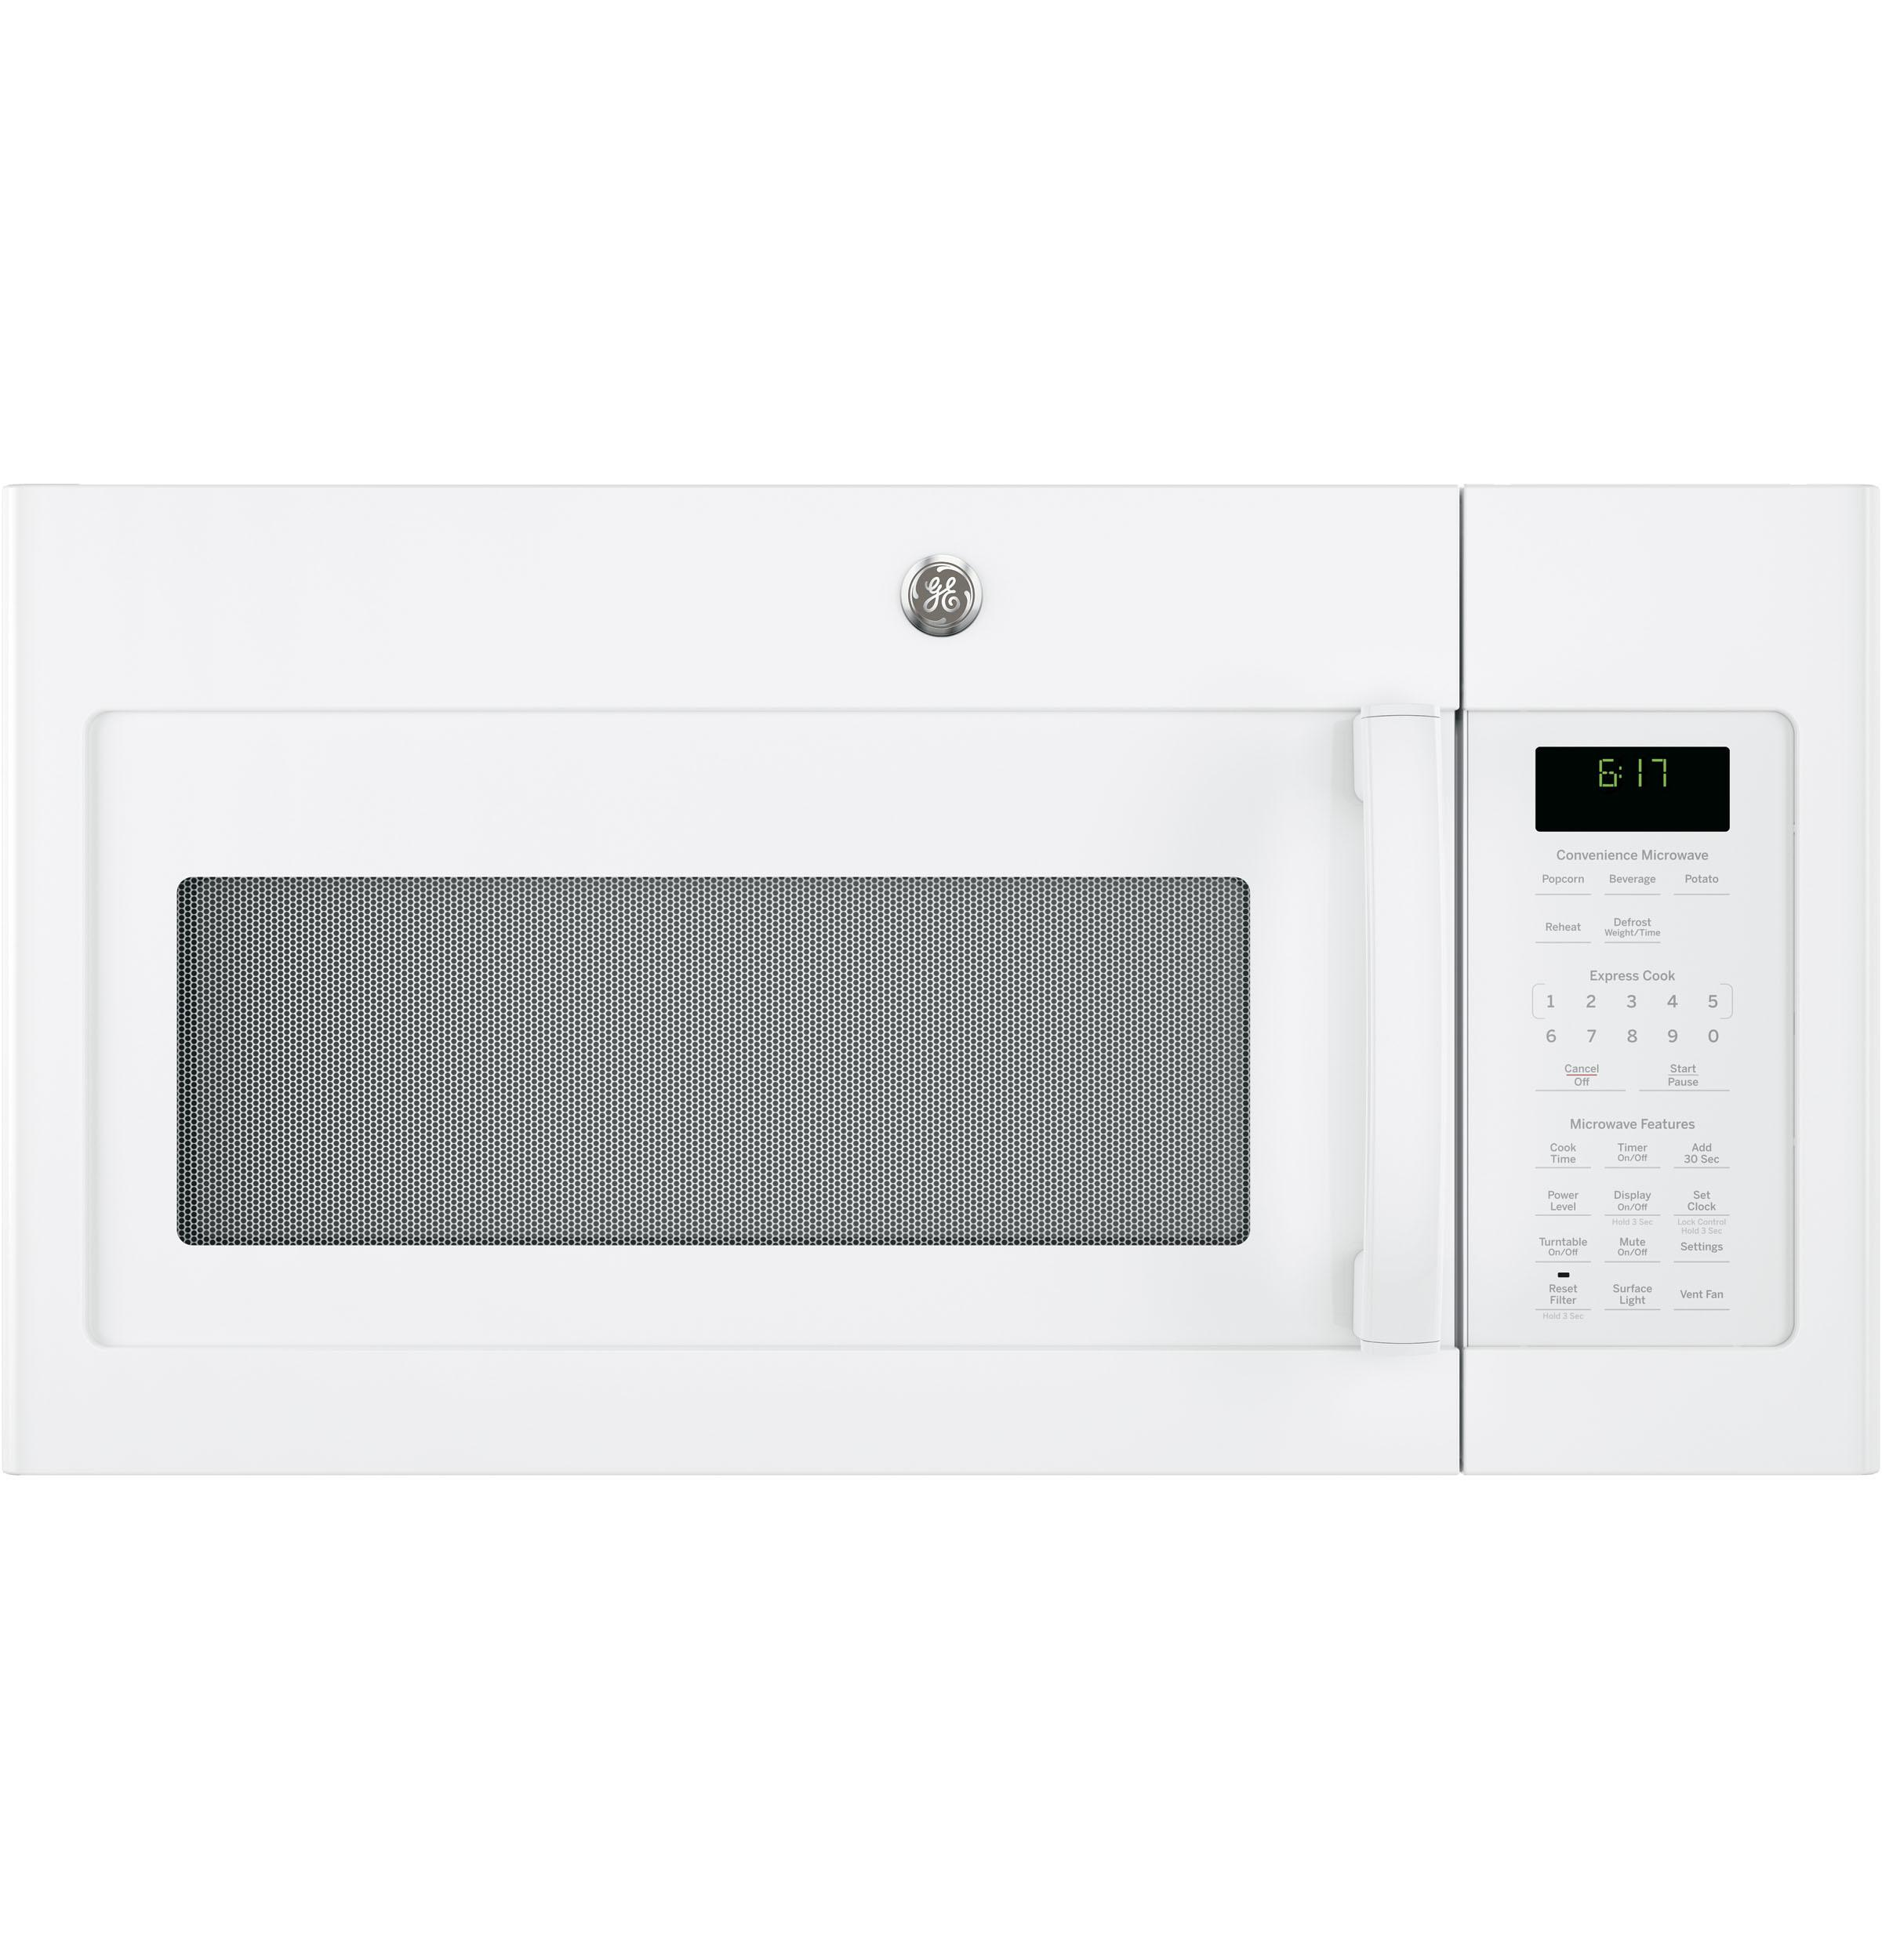 GE(R) 1.7 Cu. Ft. Over-the-Range Microwave Oven